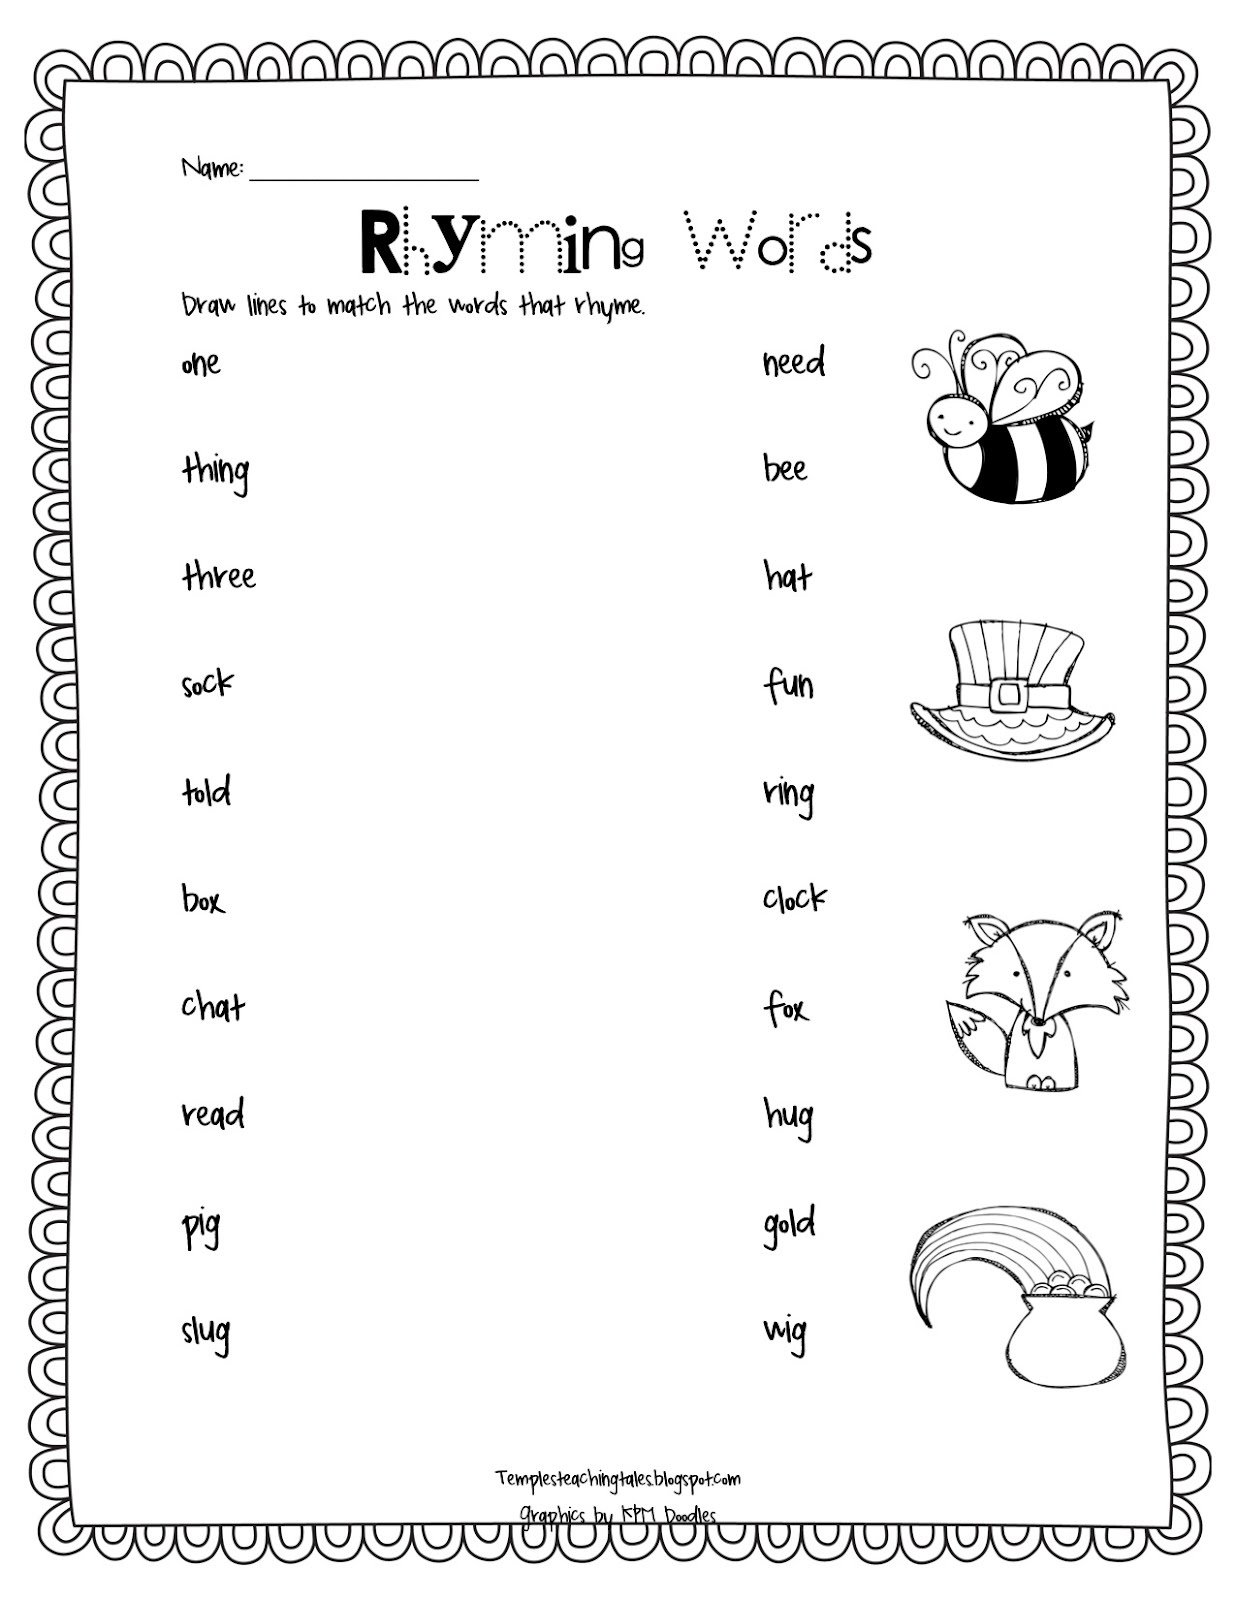 Printables Free Printable Rhyming Worksheets free printable rhyming worksheets for kindergarten preschool activities words worksheet on